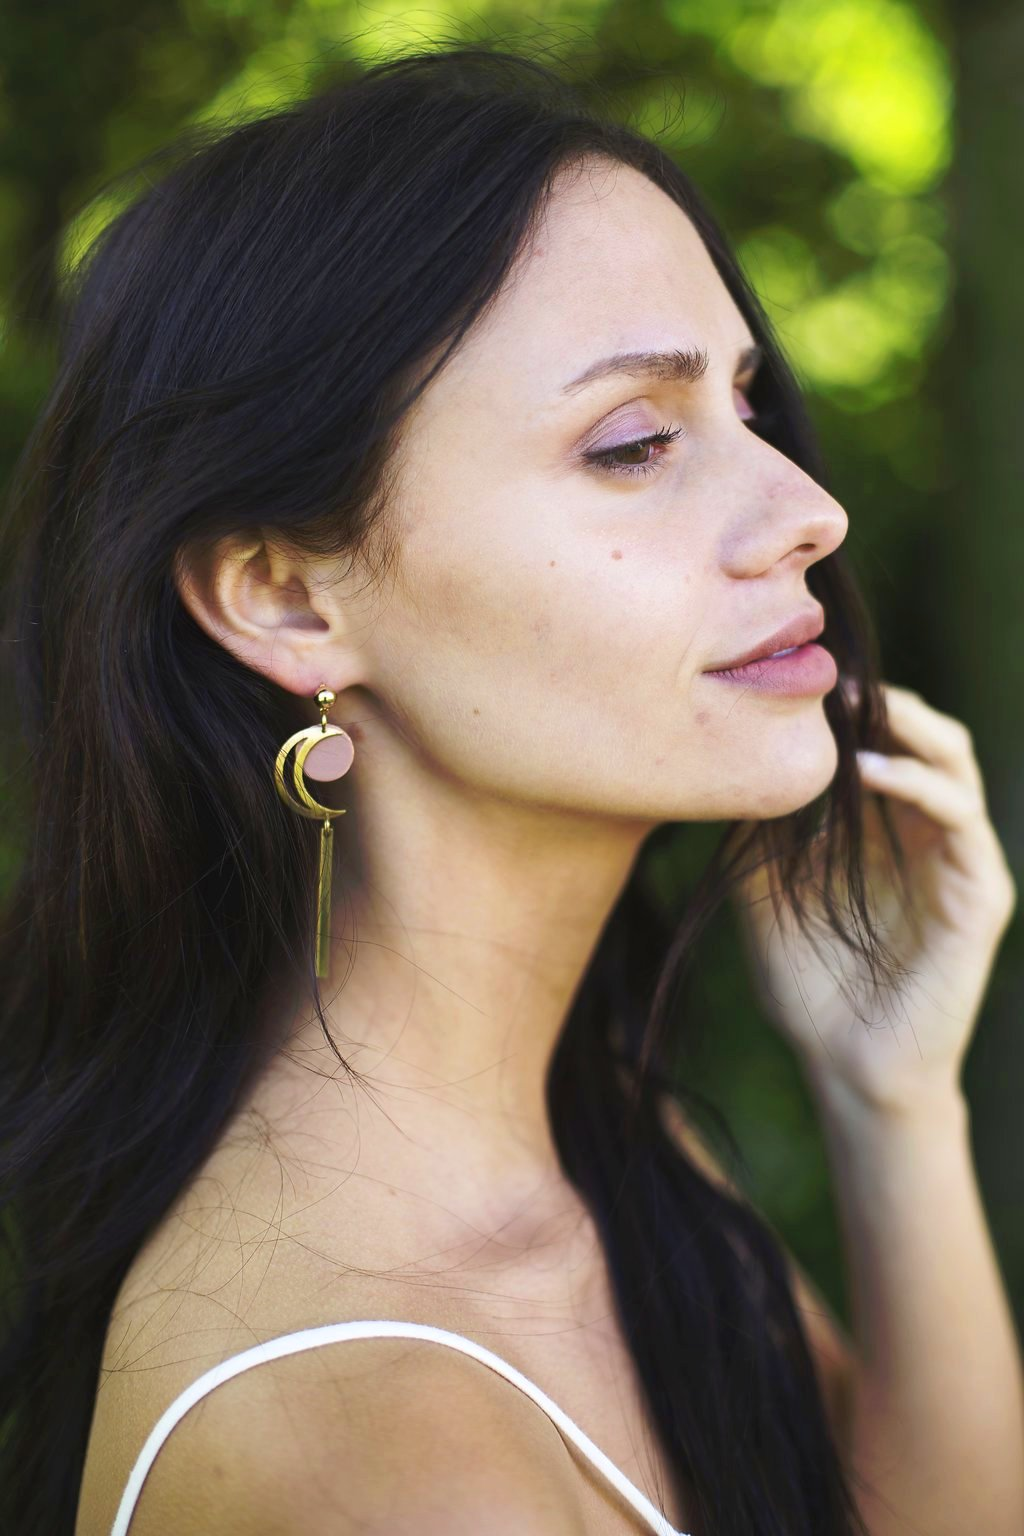 Brass & Copper Earring - Long Slender - Crescent Moon With Brushed Copper Accent